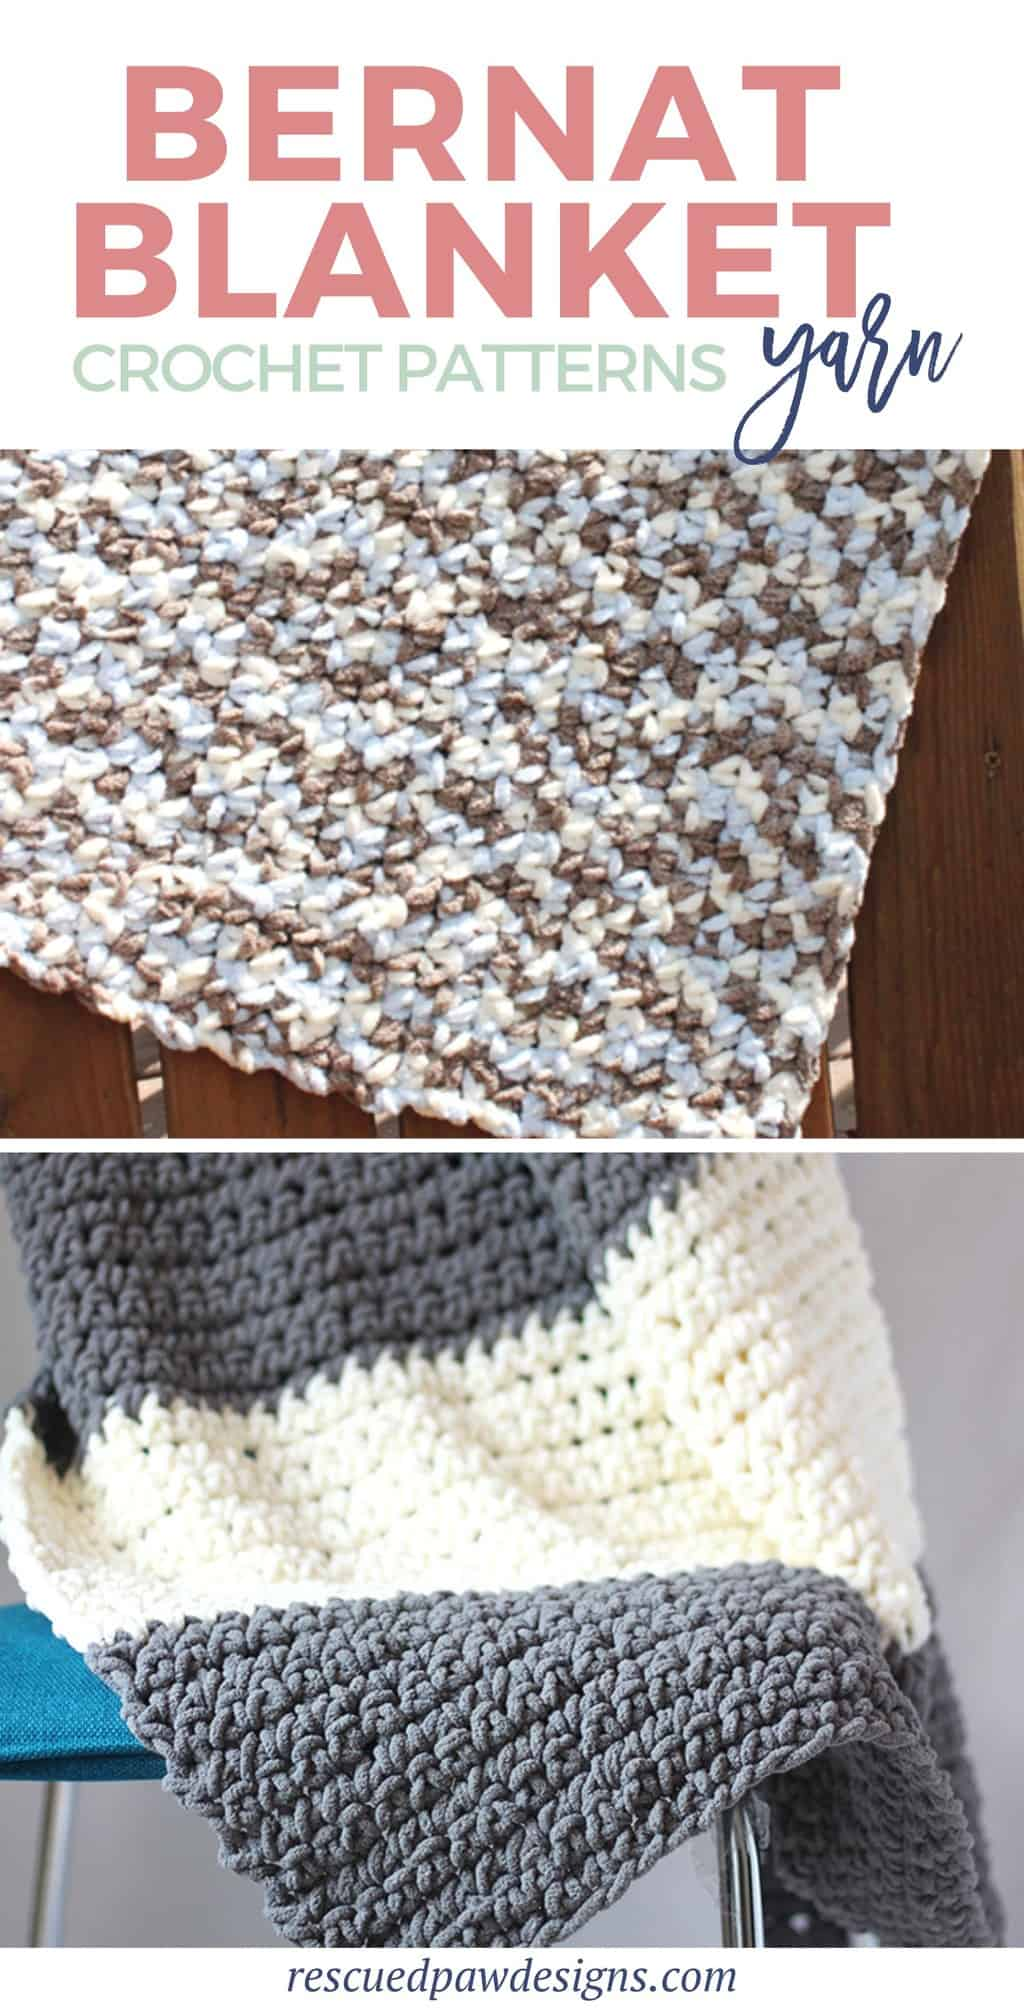 Bernat Blanket Yarn Crochet Patterns Easycrochet Com